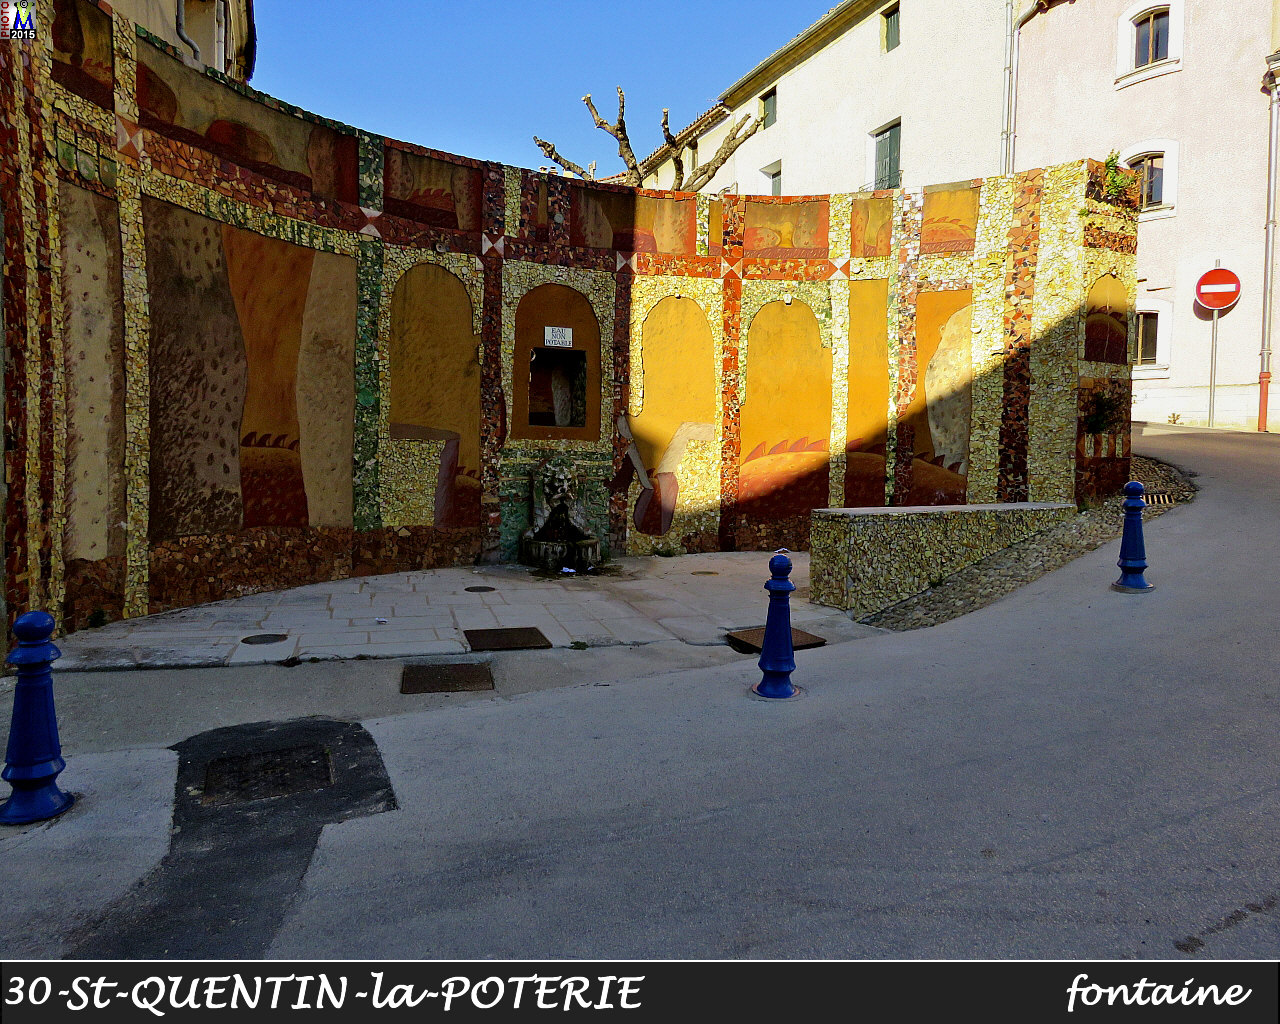 30StQUENTIN-POTERIE_fontaine_102.jpg